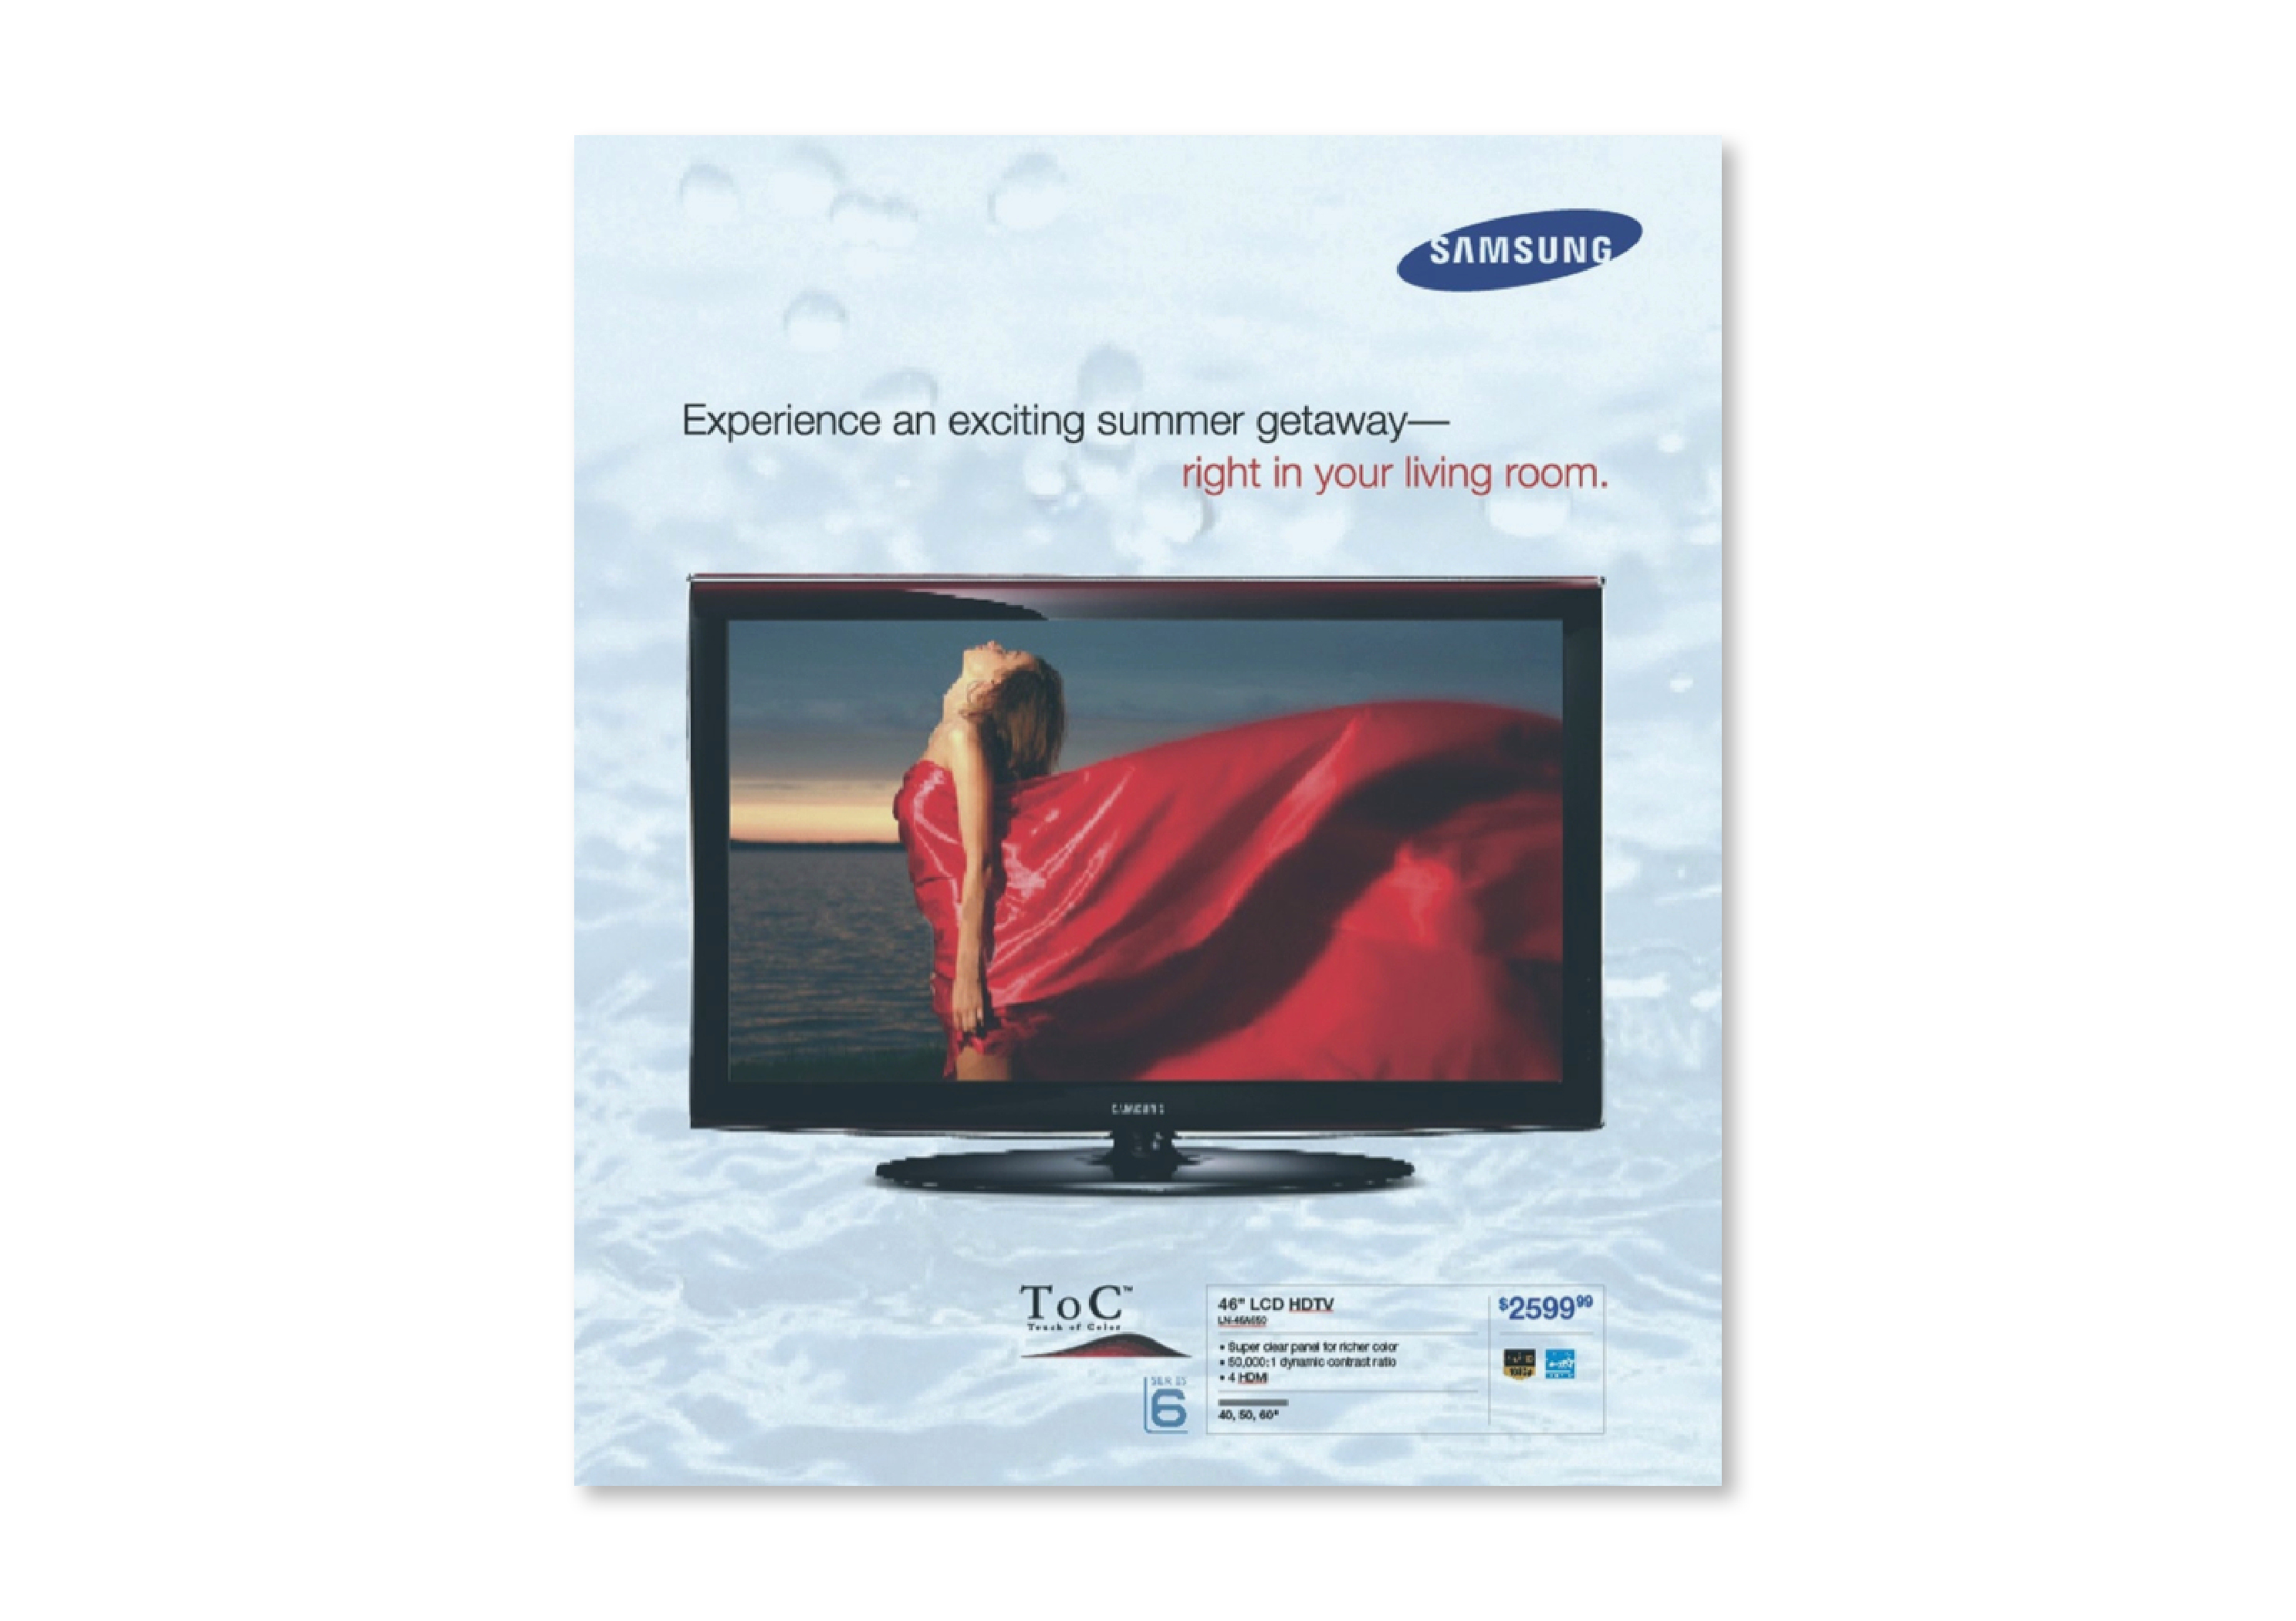 Samsung Product Brochure